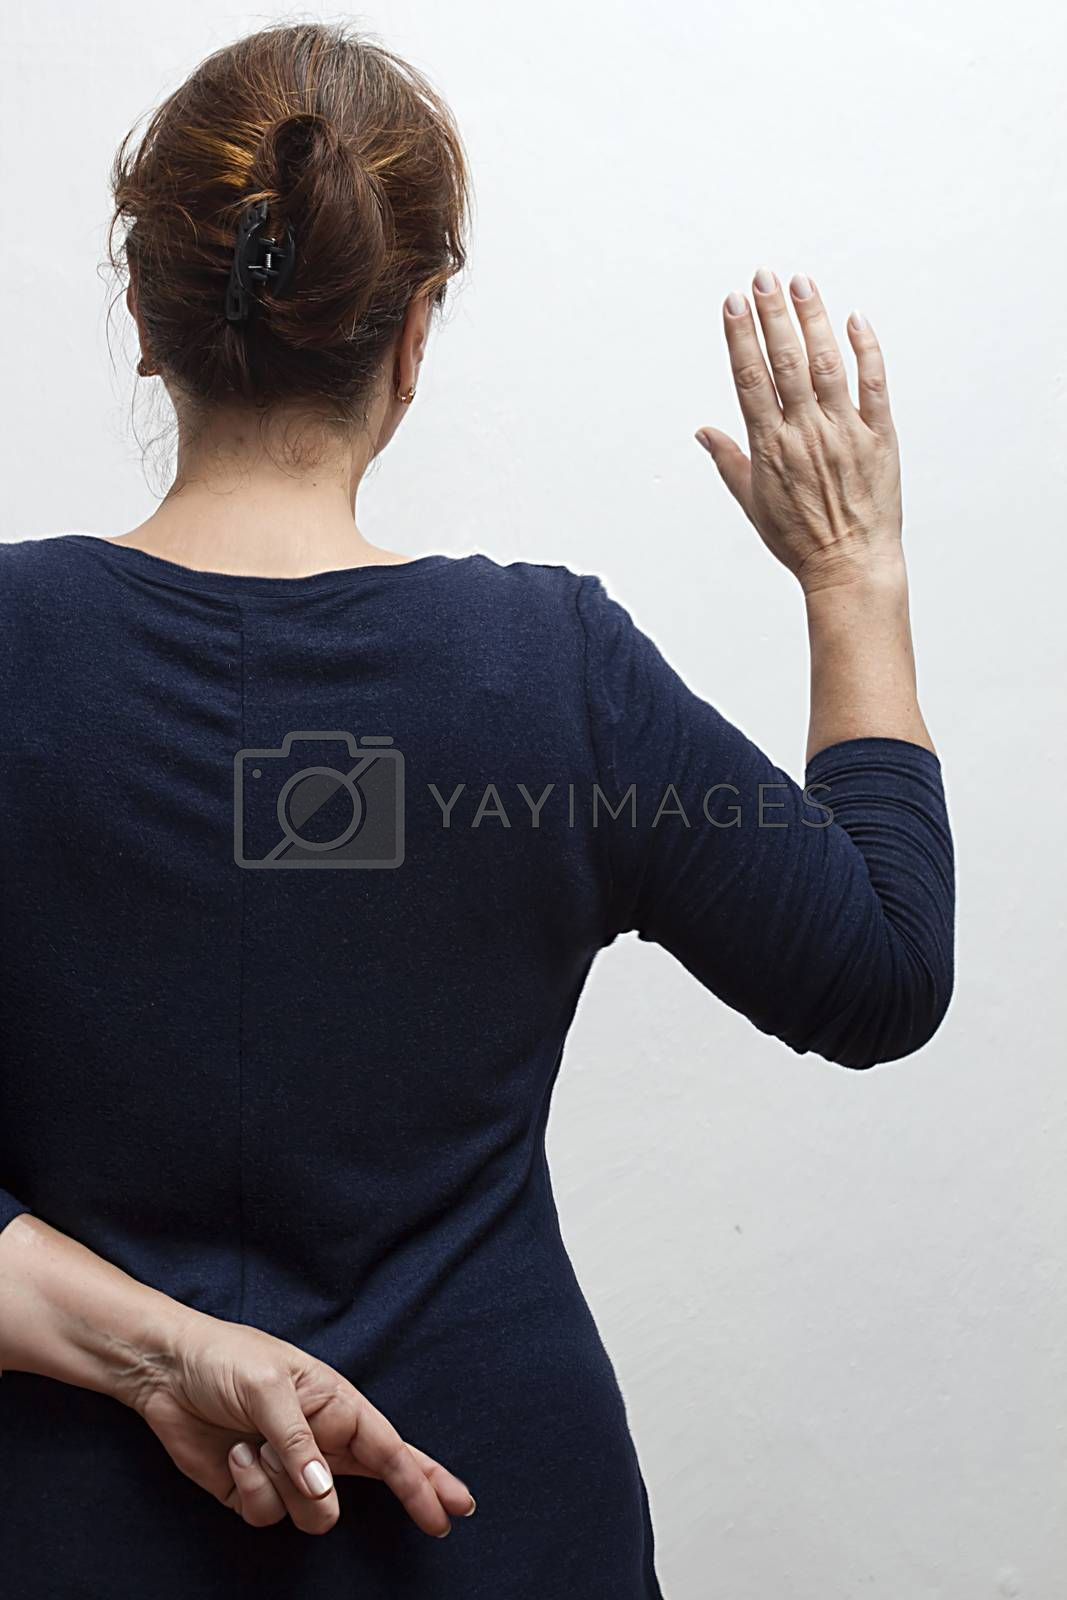 Woman takes an oath and holds her crossed fingers behind her back.